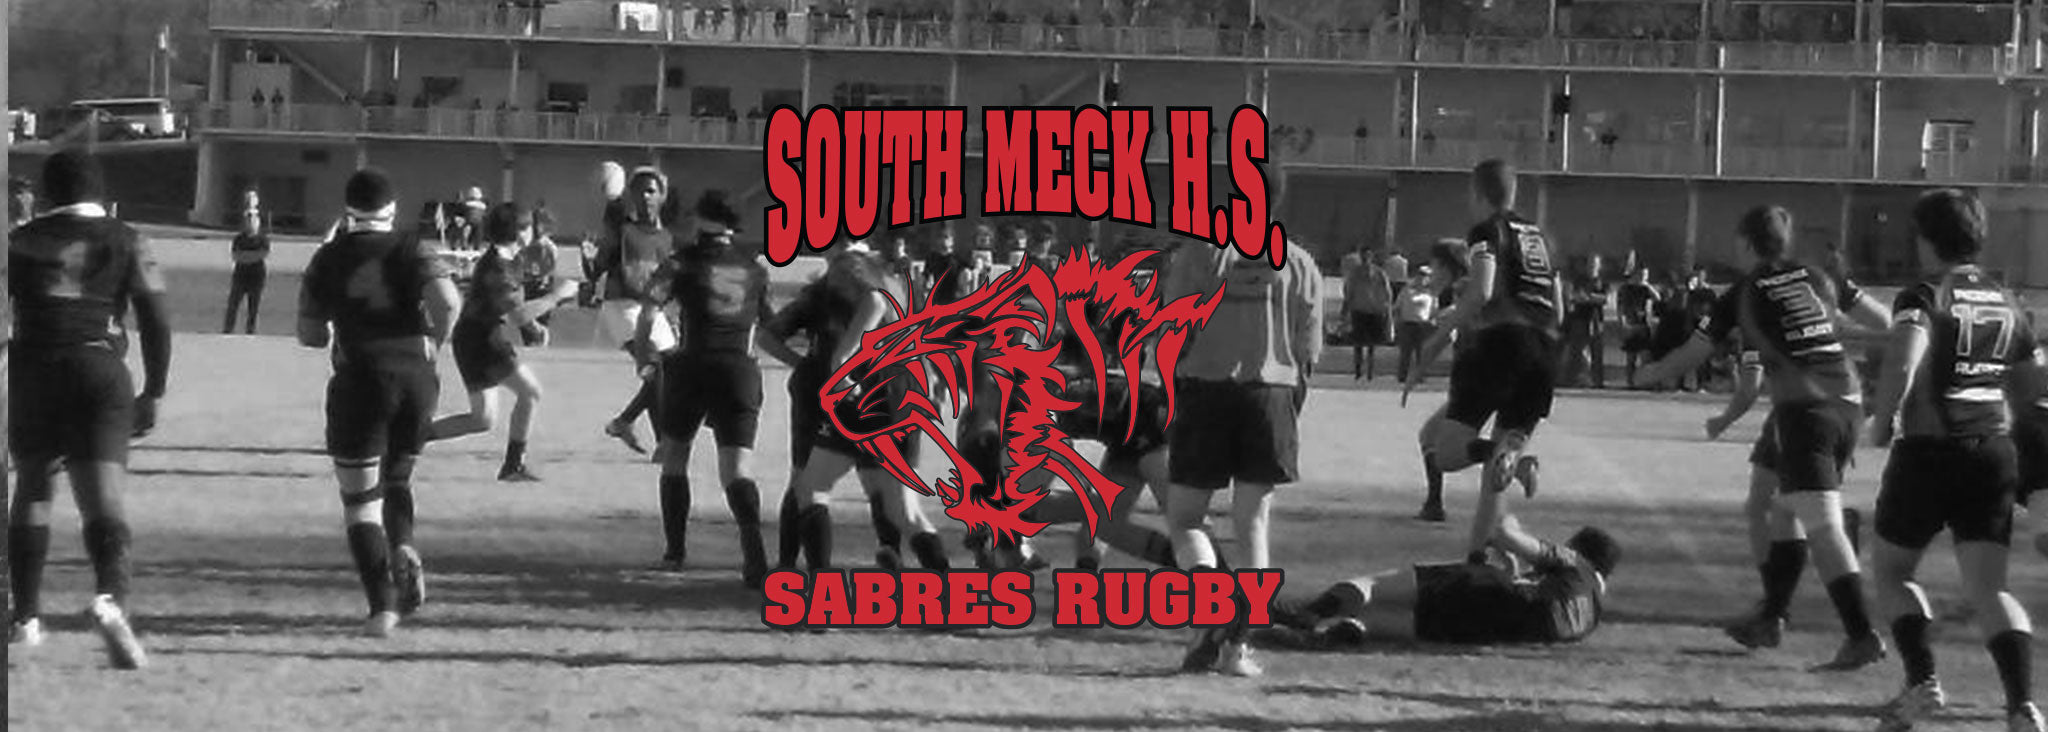 South Meck Sabres